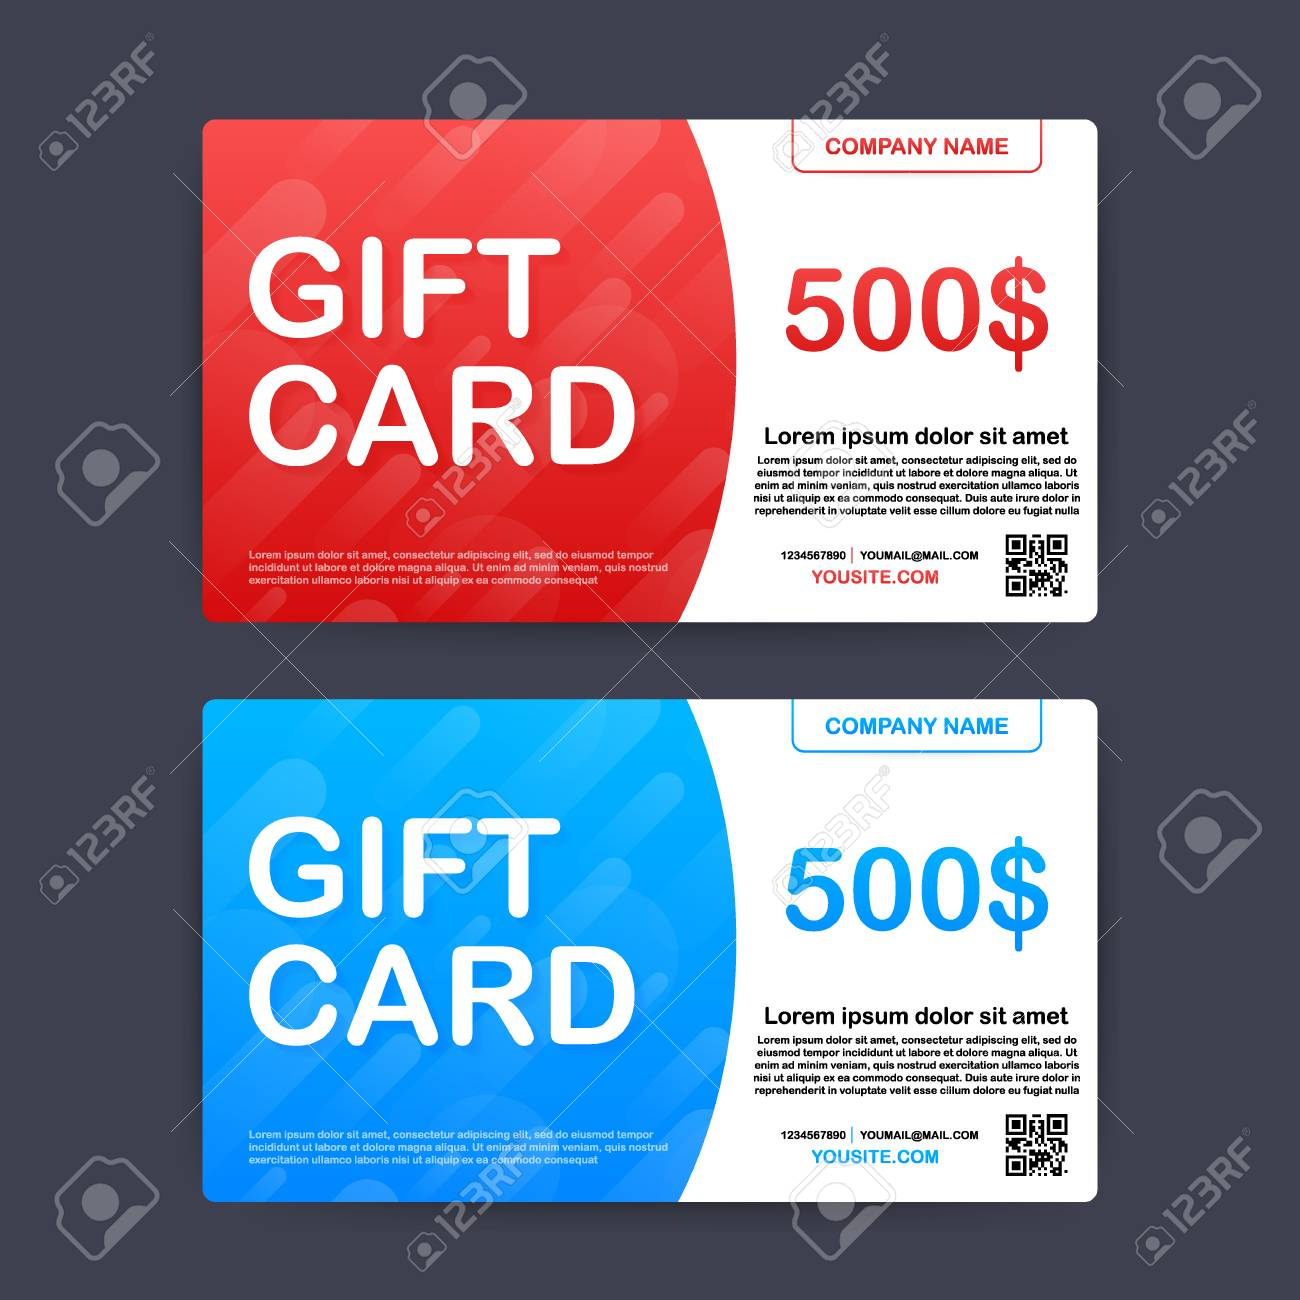 Template red and blue gift card. 500 dollars voucher. Vector stock illustration. - 120832483